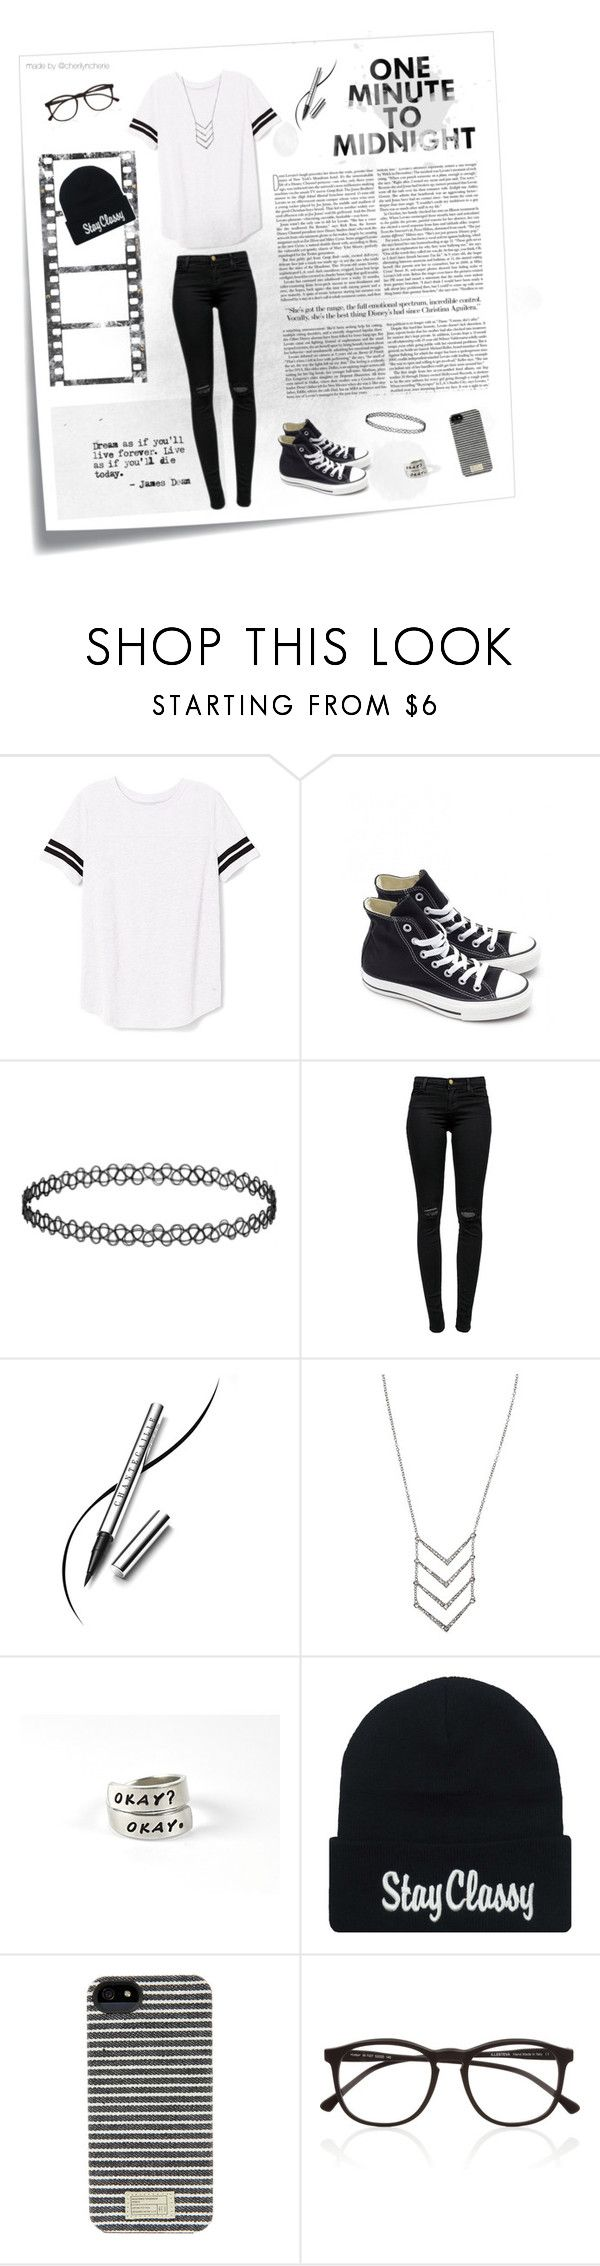 """""""One Minute To Midnight"""" by cherilyncherie ❤ liked on Polyvore featuring Post-It, Victoria's Secret PINK, Converse, Topshop, J Brand, Chantecaille, HEX and Illesteva"""